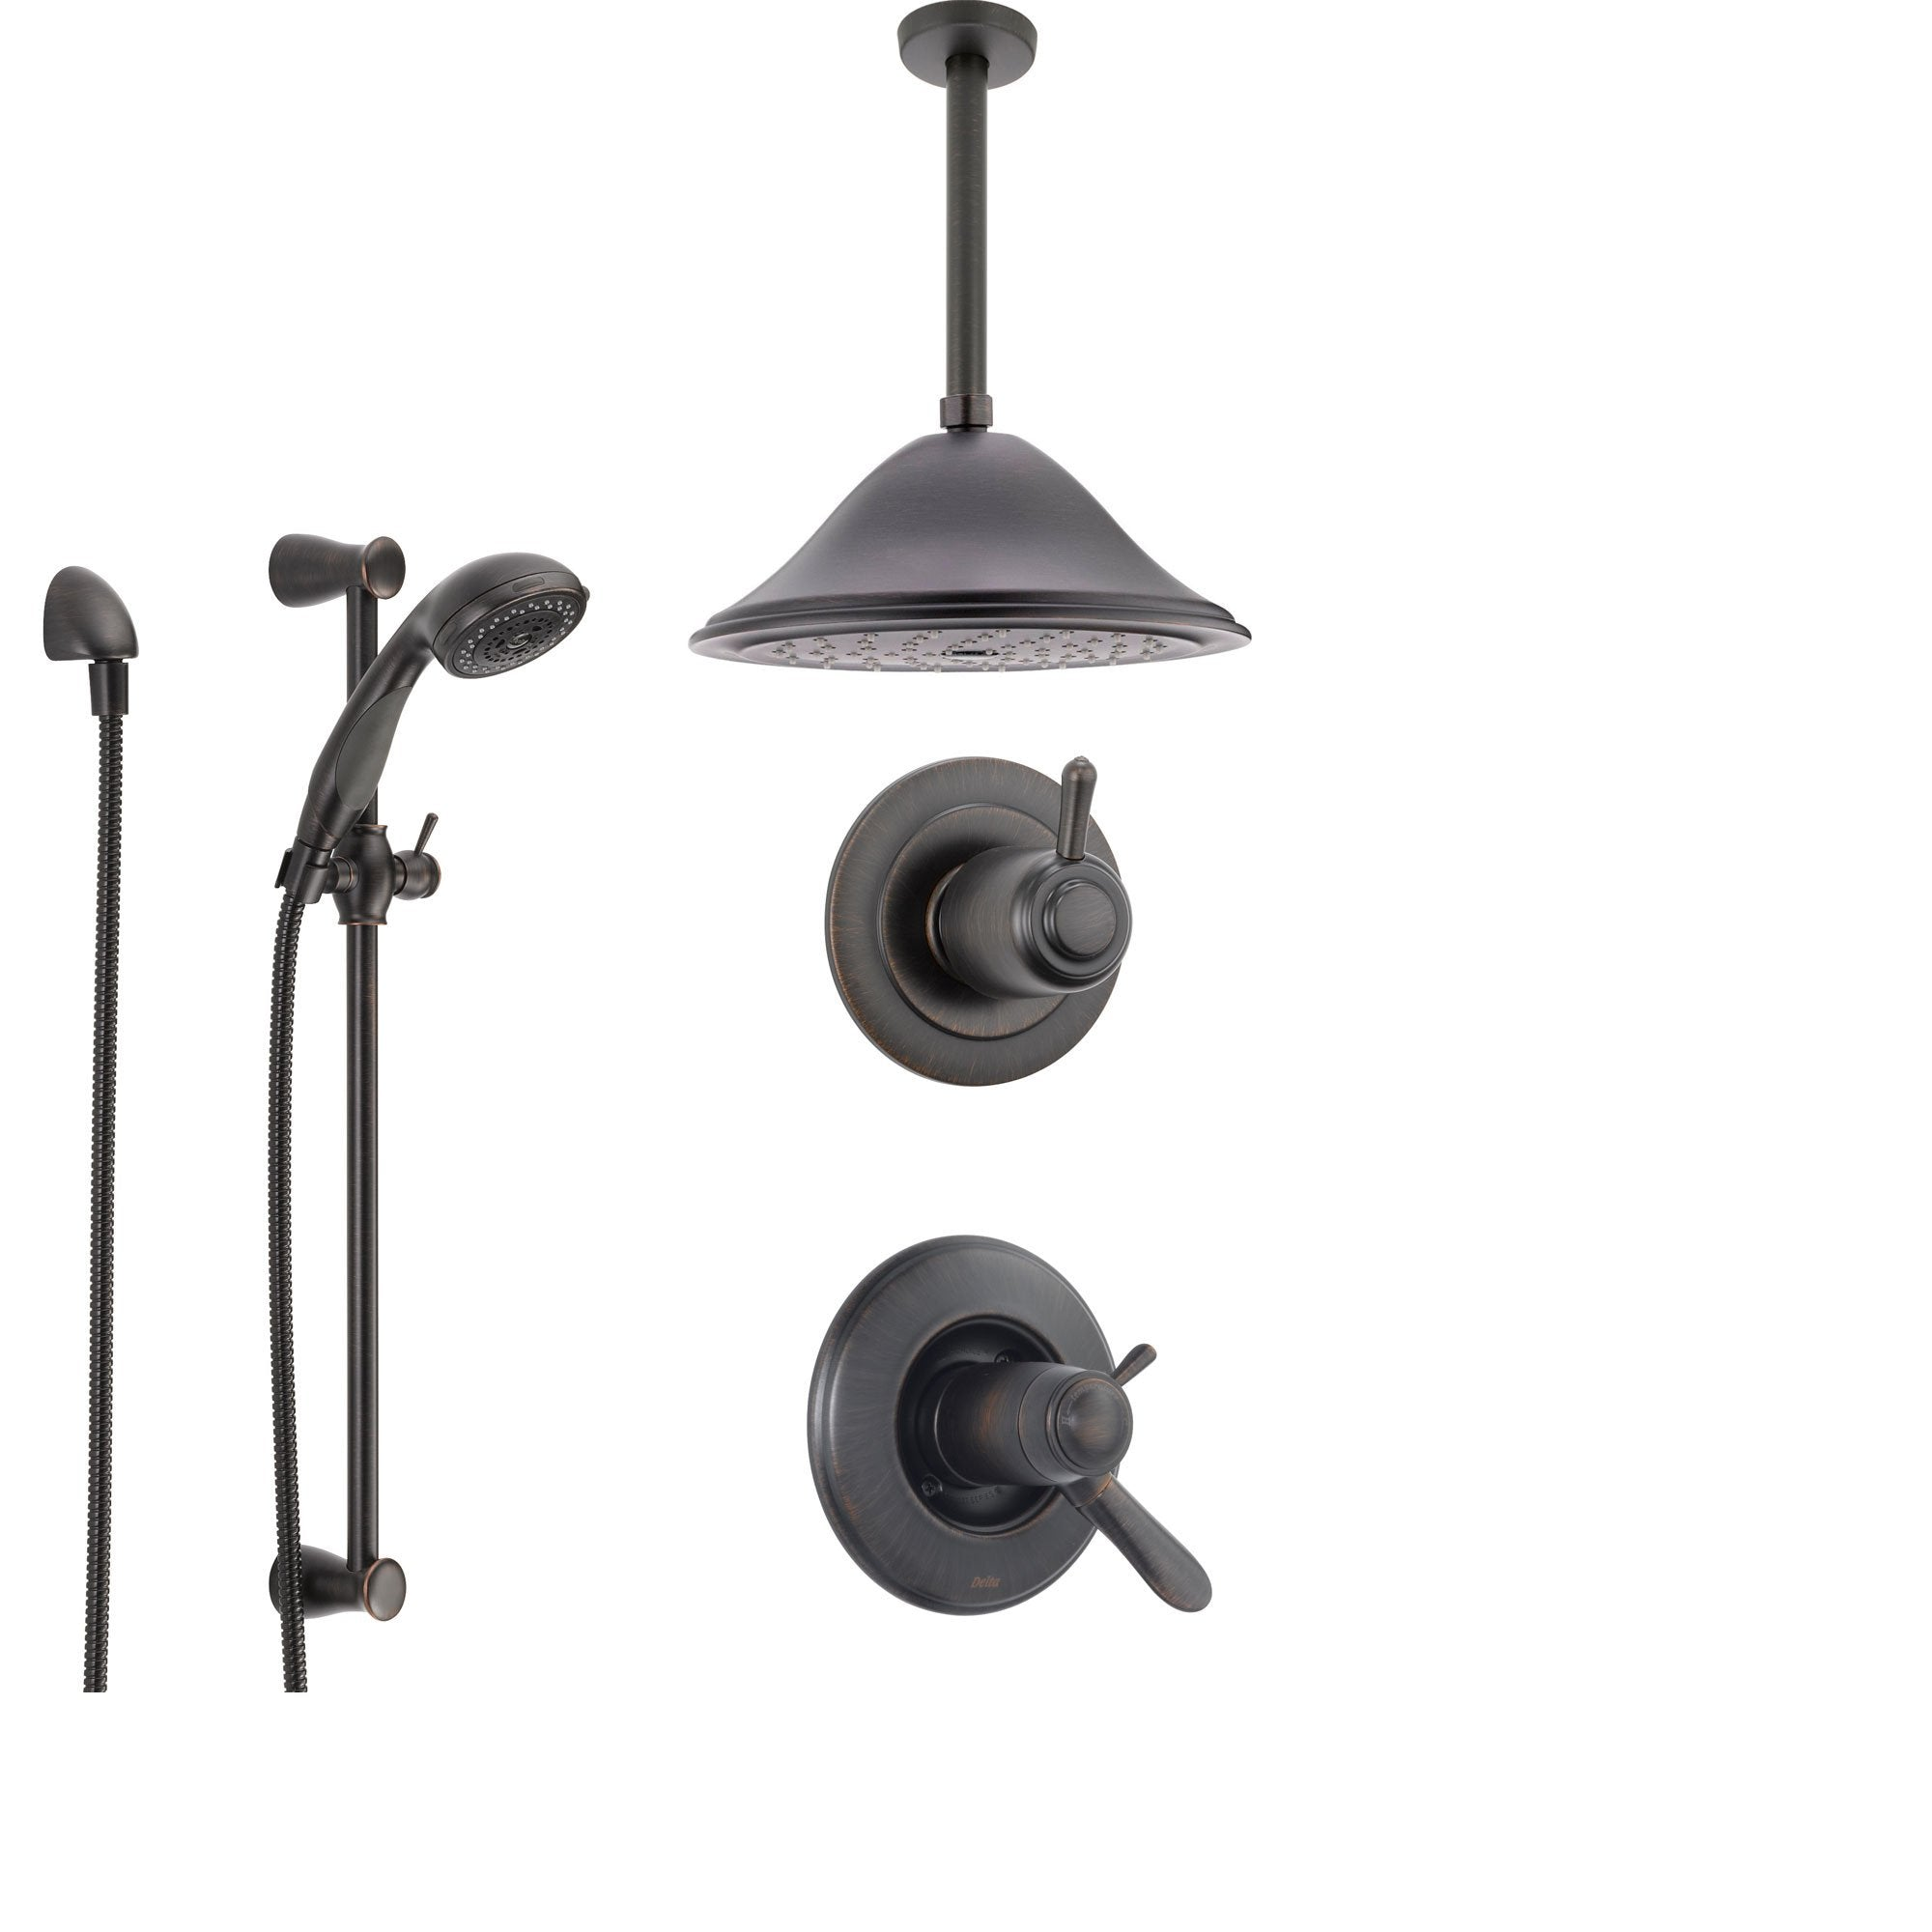 Delta Lahara Venetian Bronze Shower System with Thermostatic Shower Handle, 3-setting Diverter, Large Ceiling Mount Rain Showerhead, and Handheld Shower SS17T3883RB